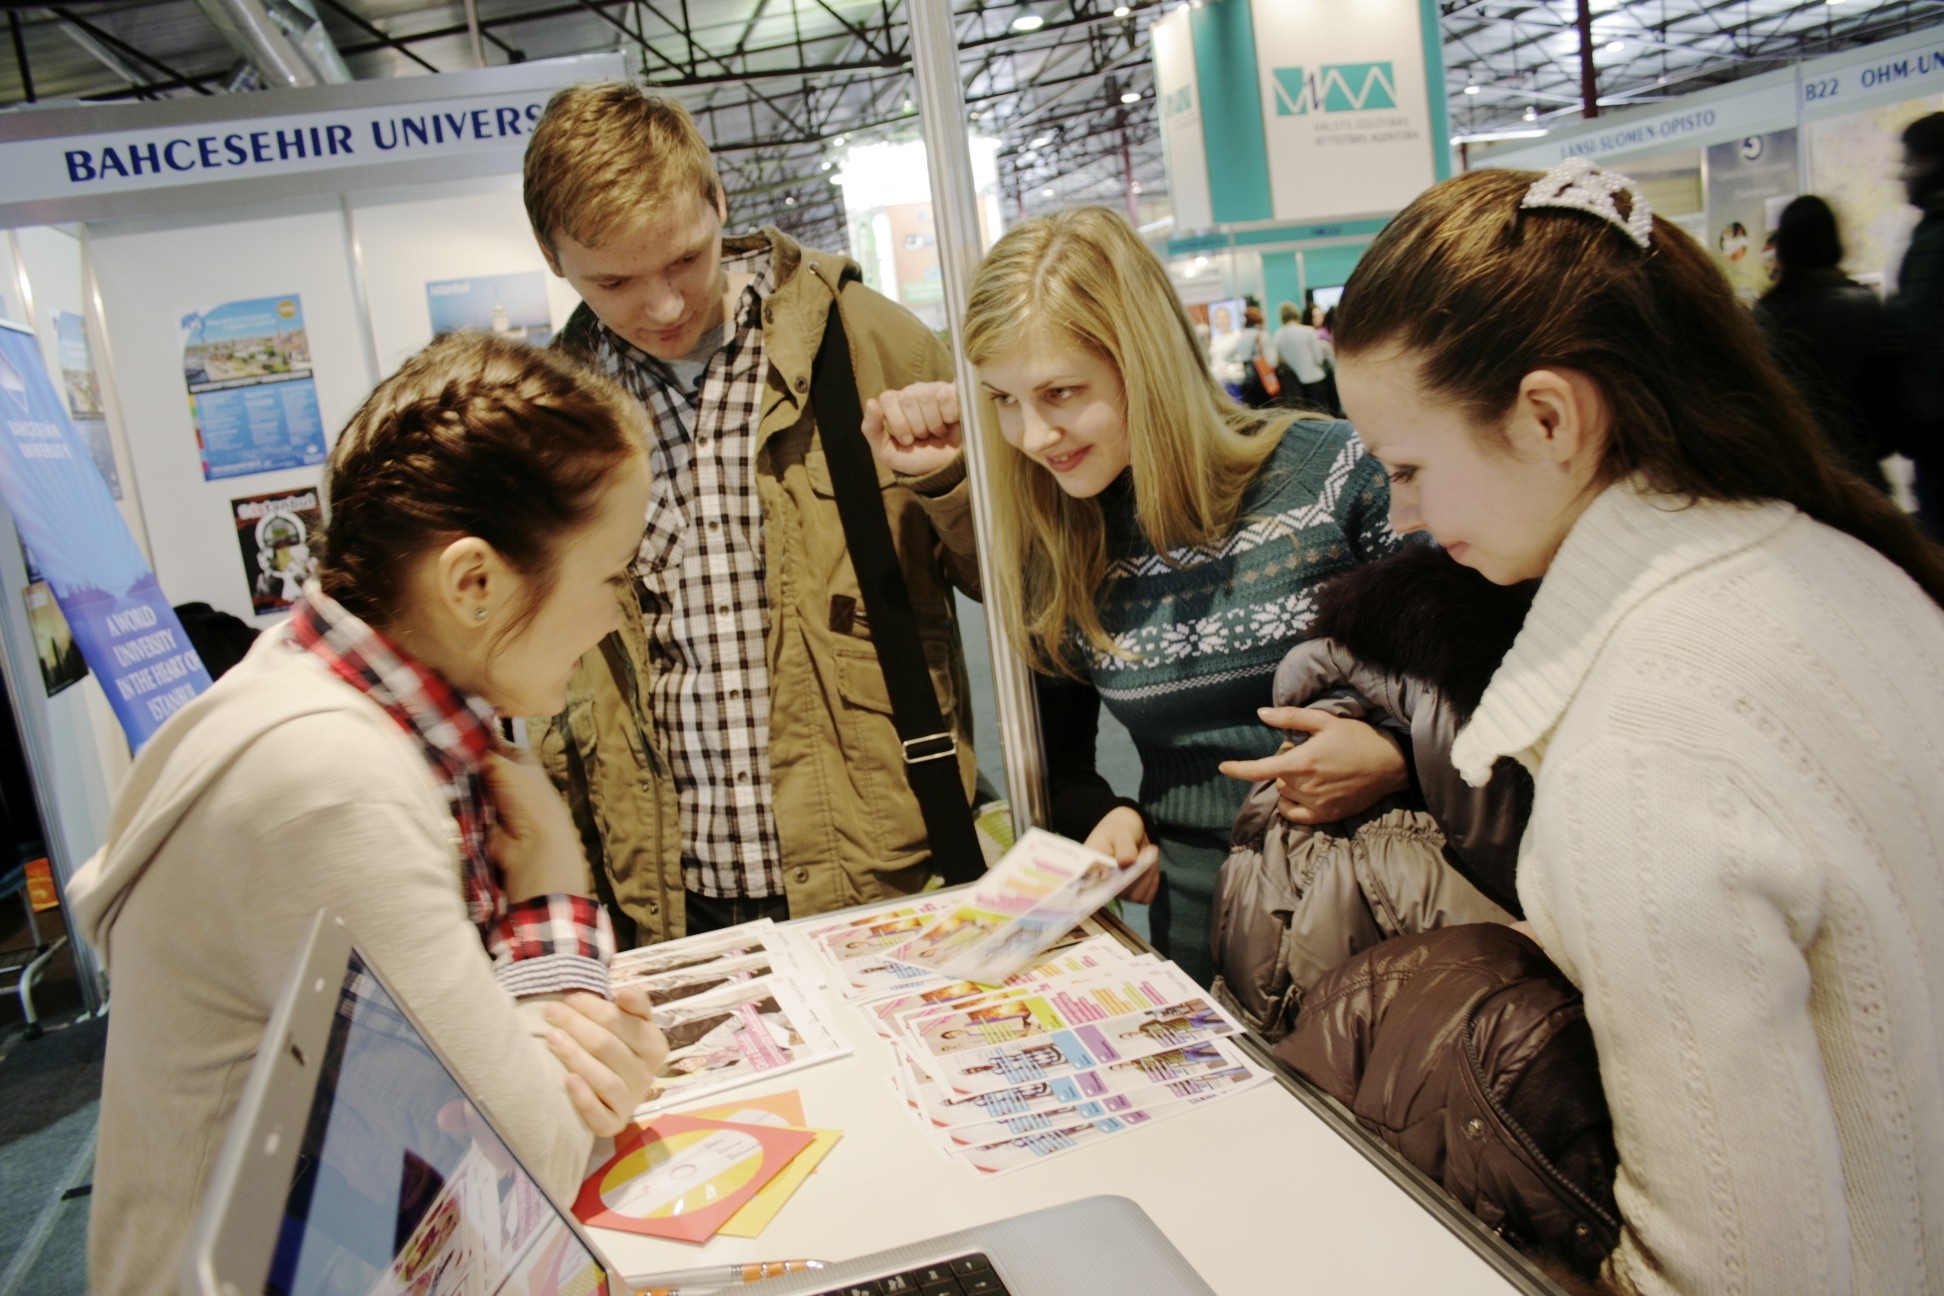 Come and meet us at the Gaudeamus Student Fair